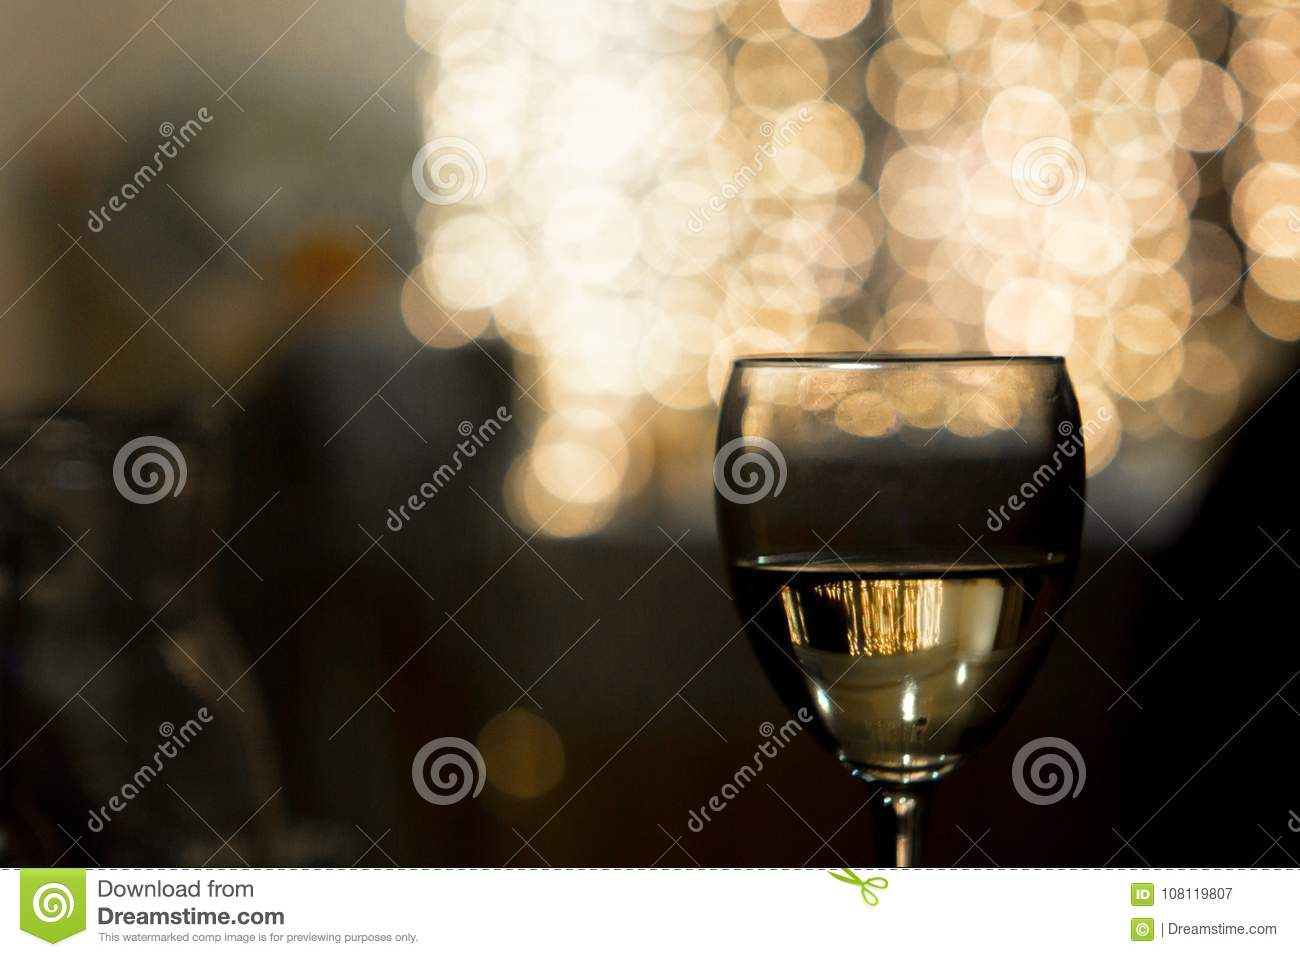 A glass of wine on a lighted background